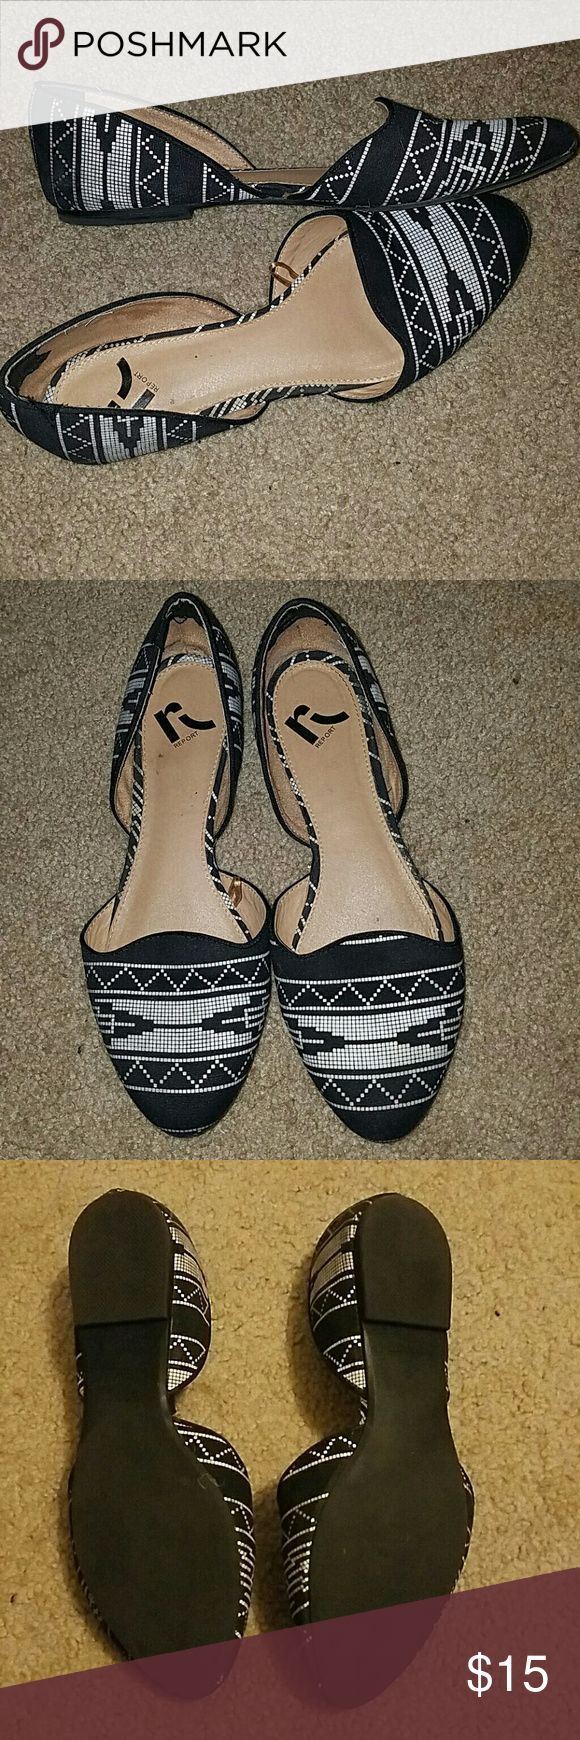 Black and White Open Middle Aztec Flats These cute flats feature a blocked black and white aztec pattern, slightly pointed toe and are open in the middle. Lightly used, great condition! Report Shoes Flats & Loafers